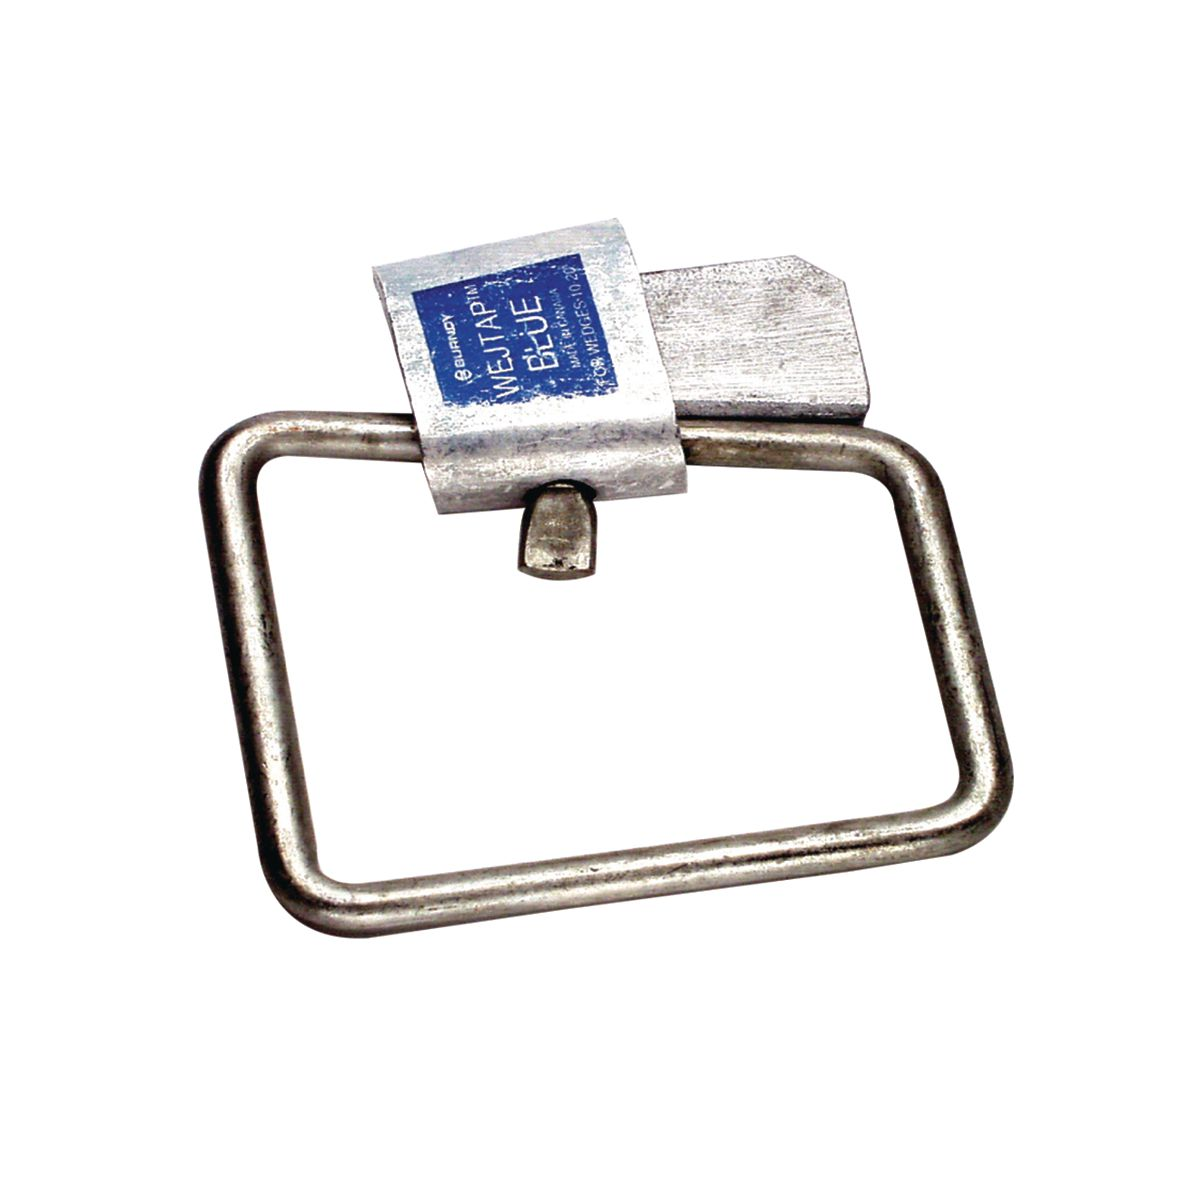 BURNDY WSM1 CONNECTOR, WEDGE TAP W/STIRRUP 0.447-0325 ALUM CONDUCTORRUN RANGE, STIRRUP BAIL SIZE DIA0.250 EQUAL TO #2 SOLID